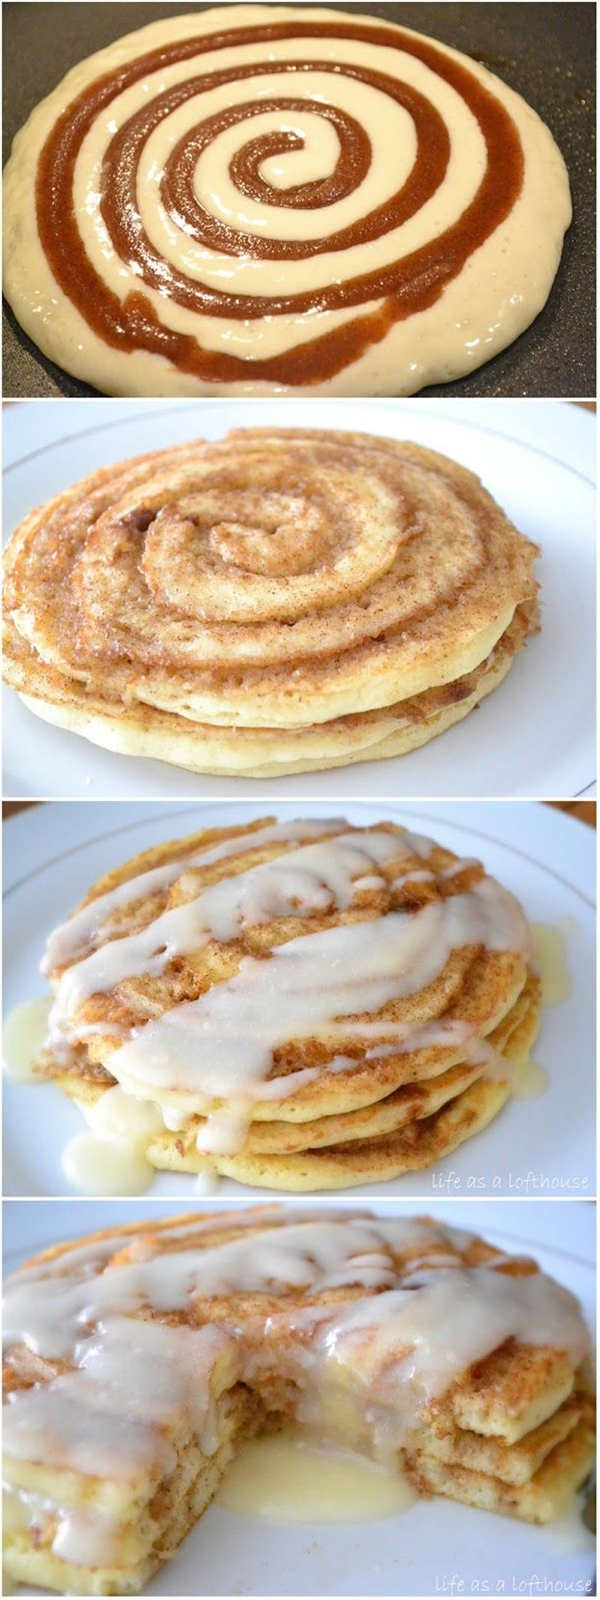 Ingredients: For Pancakes: 1 cup all-purpose flour,  2 teaspoons baking powder,  1/2 teaspoon salt,  1 cup milk,  1 Tablespoon canola oil,  1 large egg, lightly beaten. Cinnamon Filling: 1/2 cup butter, melted,  3/4 cup packed brown sugar,  1 Tablespoon ground cinnamon.